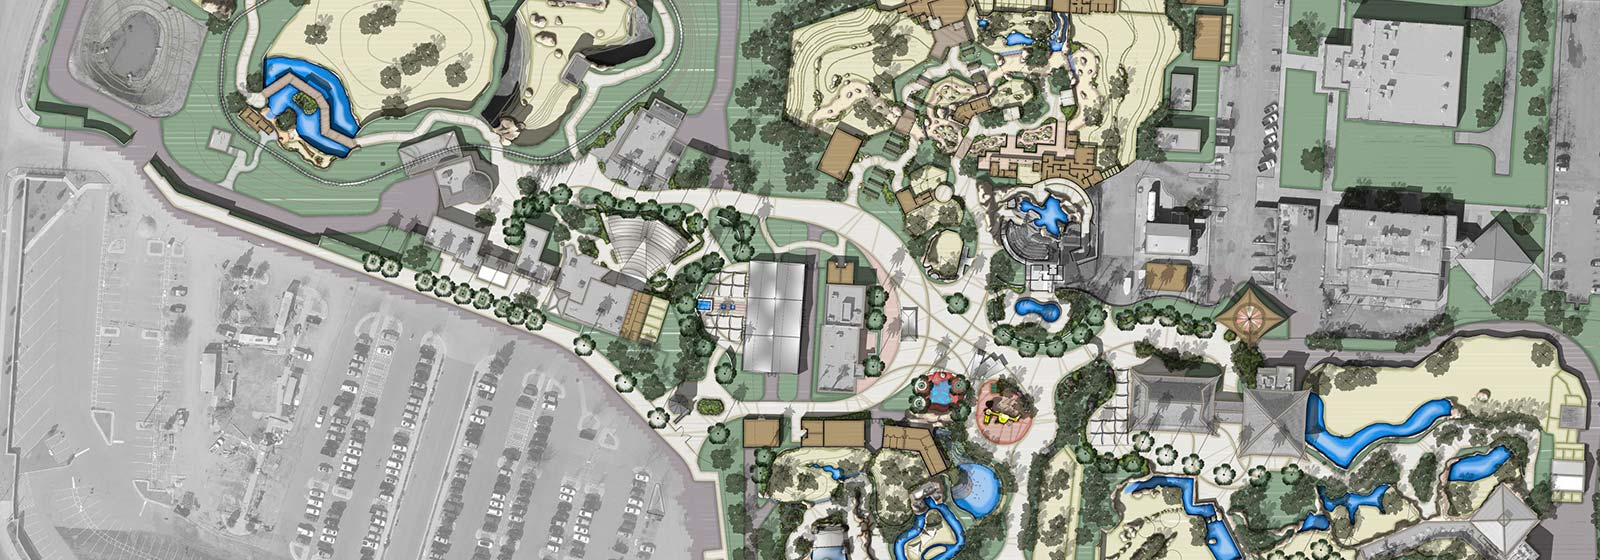 Zoo Design Architects Conquer the Master Plan Madness | WDM Architects